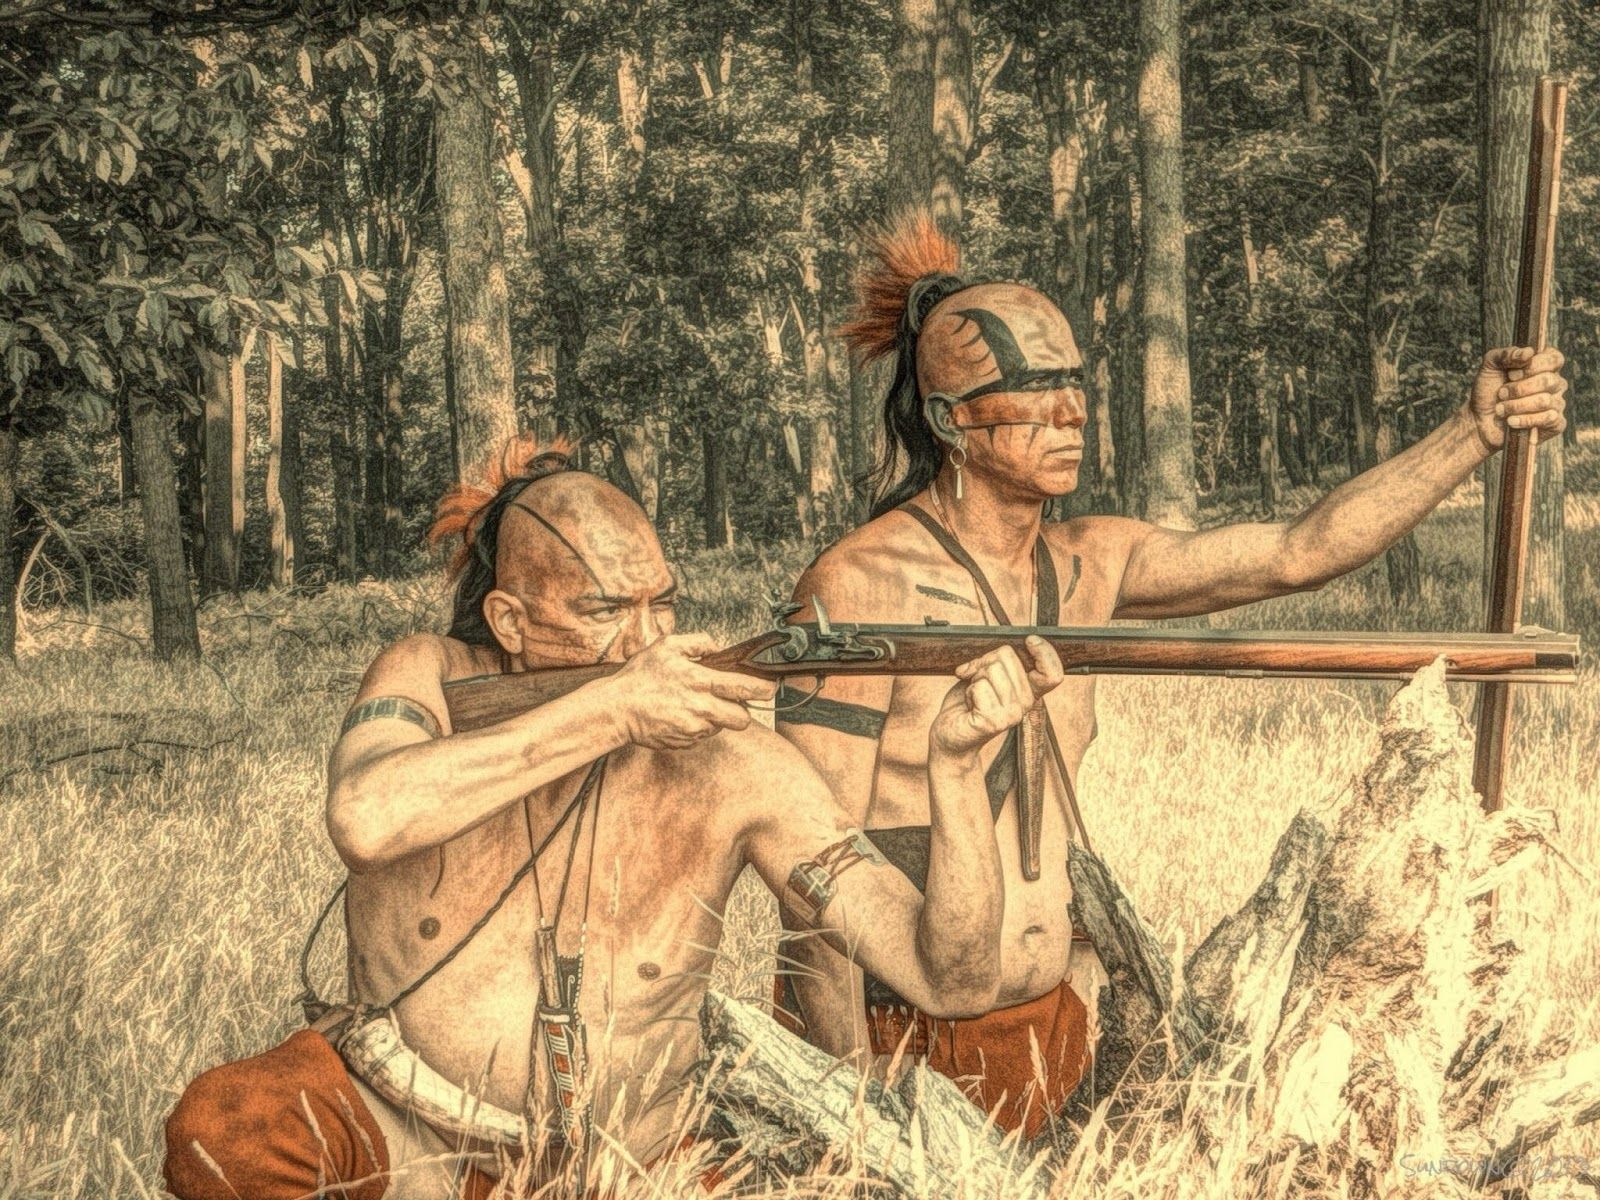 a history of native americans and war The history of native americans in the united states began in ancient times tens of thousands of years ago  after the war many native americans relocated to urban .